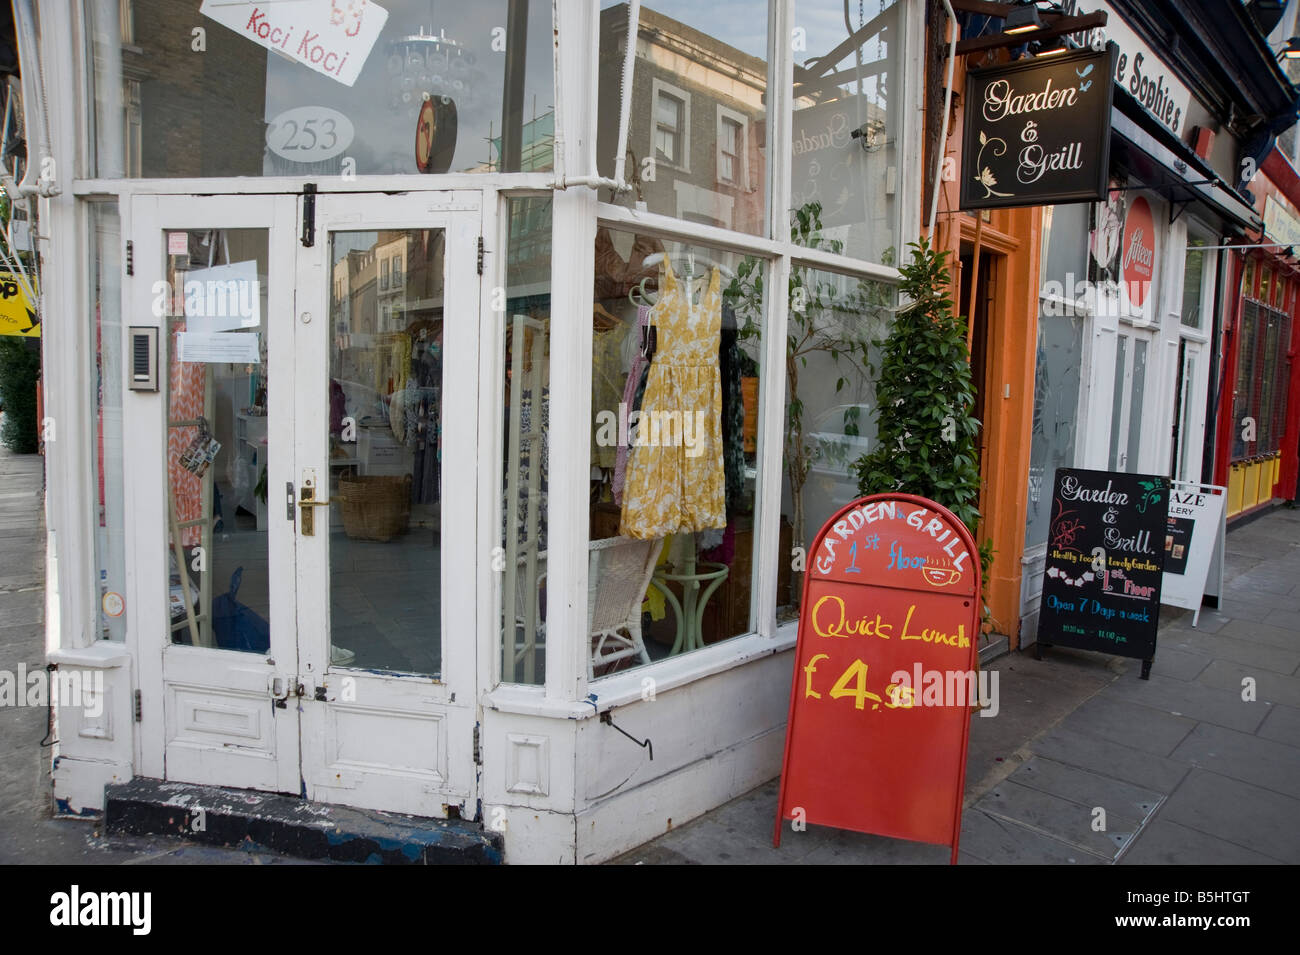 The Garden and Grill restaurant 253a Portobello Road Notting Hill London W11 1LR - Stock Image